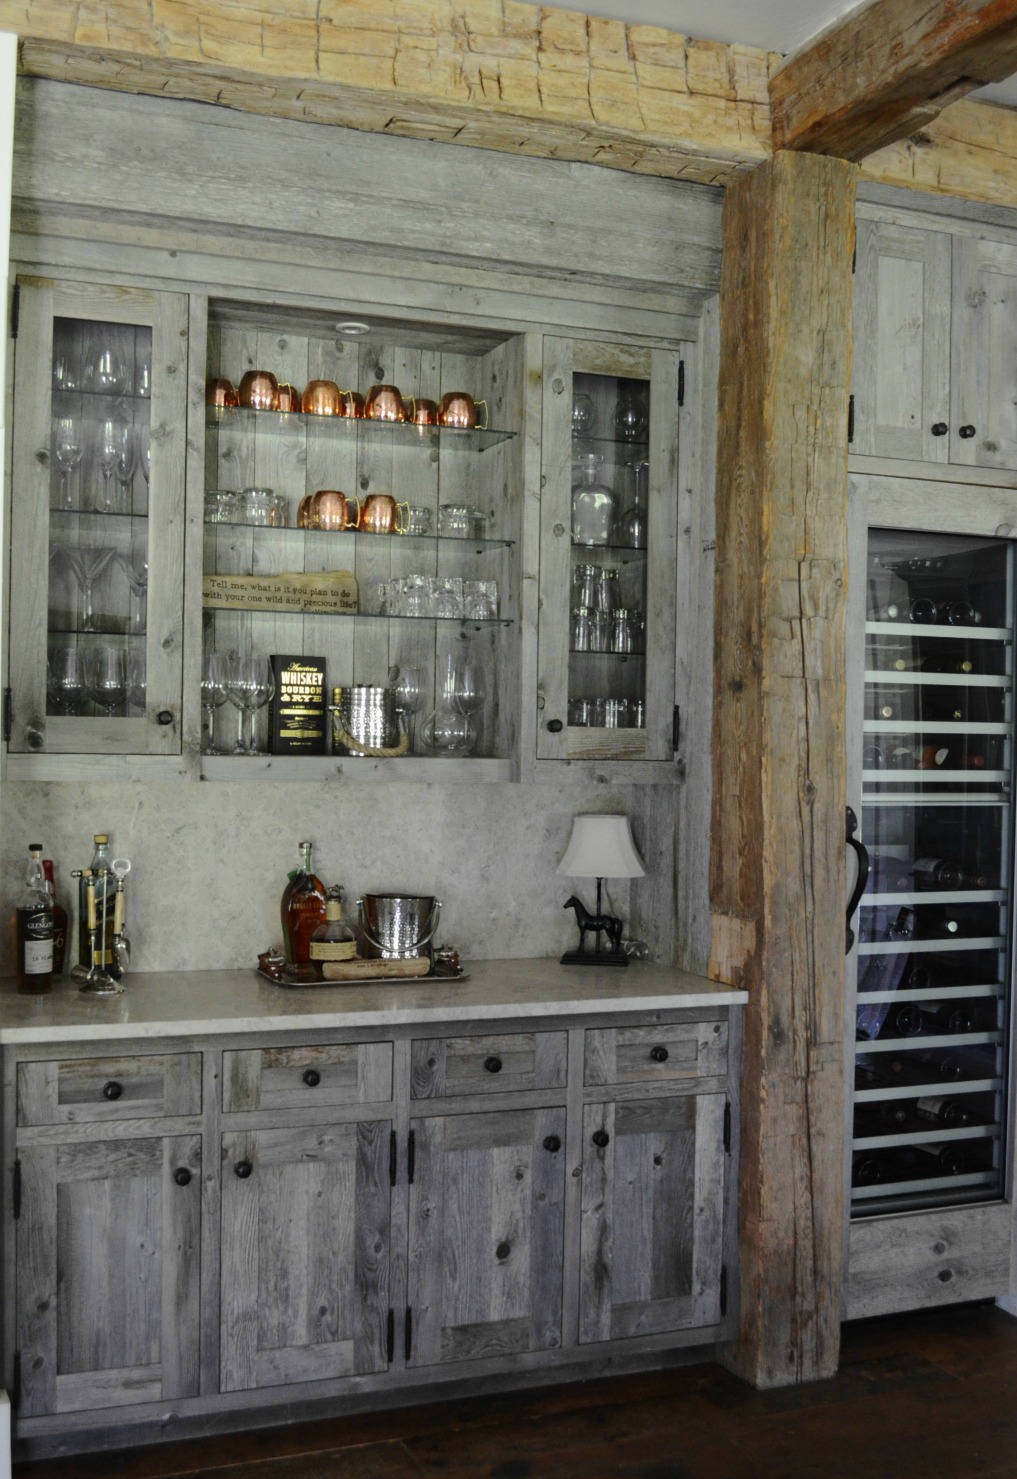 Eclectic Home Tour of Sanctuary Home - welcome to Crow Hollow Ranch. This 500 acre property is complete with farmhouse, guest house and rustic cabin kellyelko.com #hometour #kitchen #rusticdecor #barnwood #whitekitchen #homedecor #bar